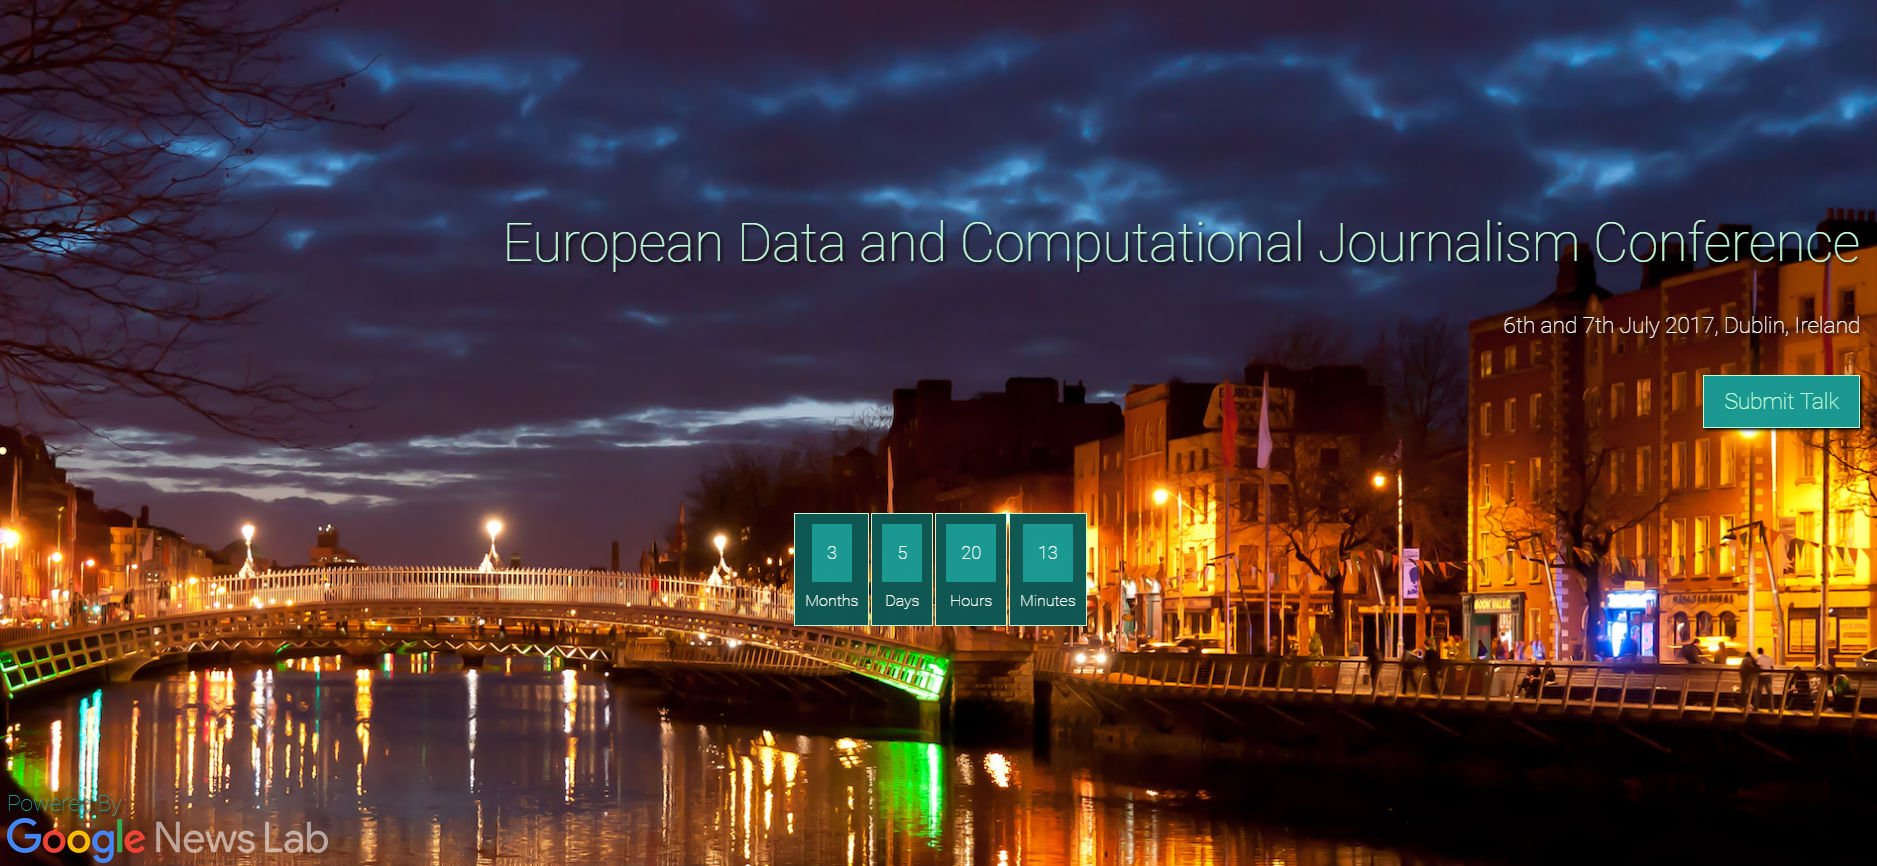 Call for papers: European Data and Computational Journalism Conference, Dublin, July 6-7